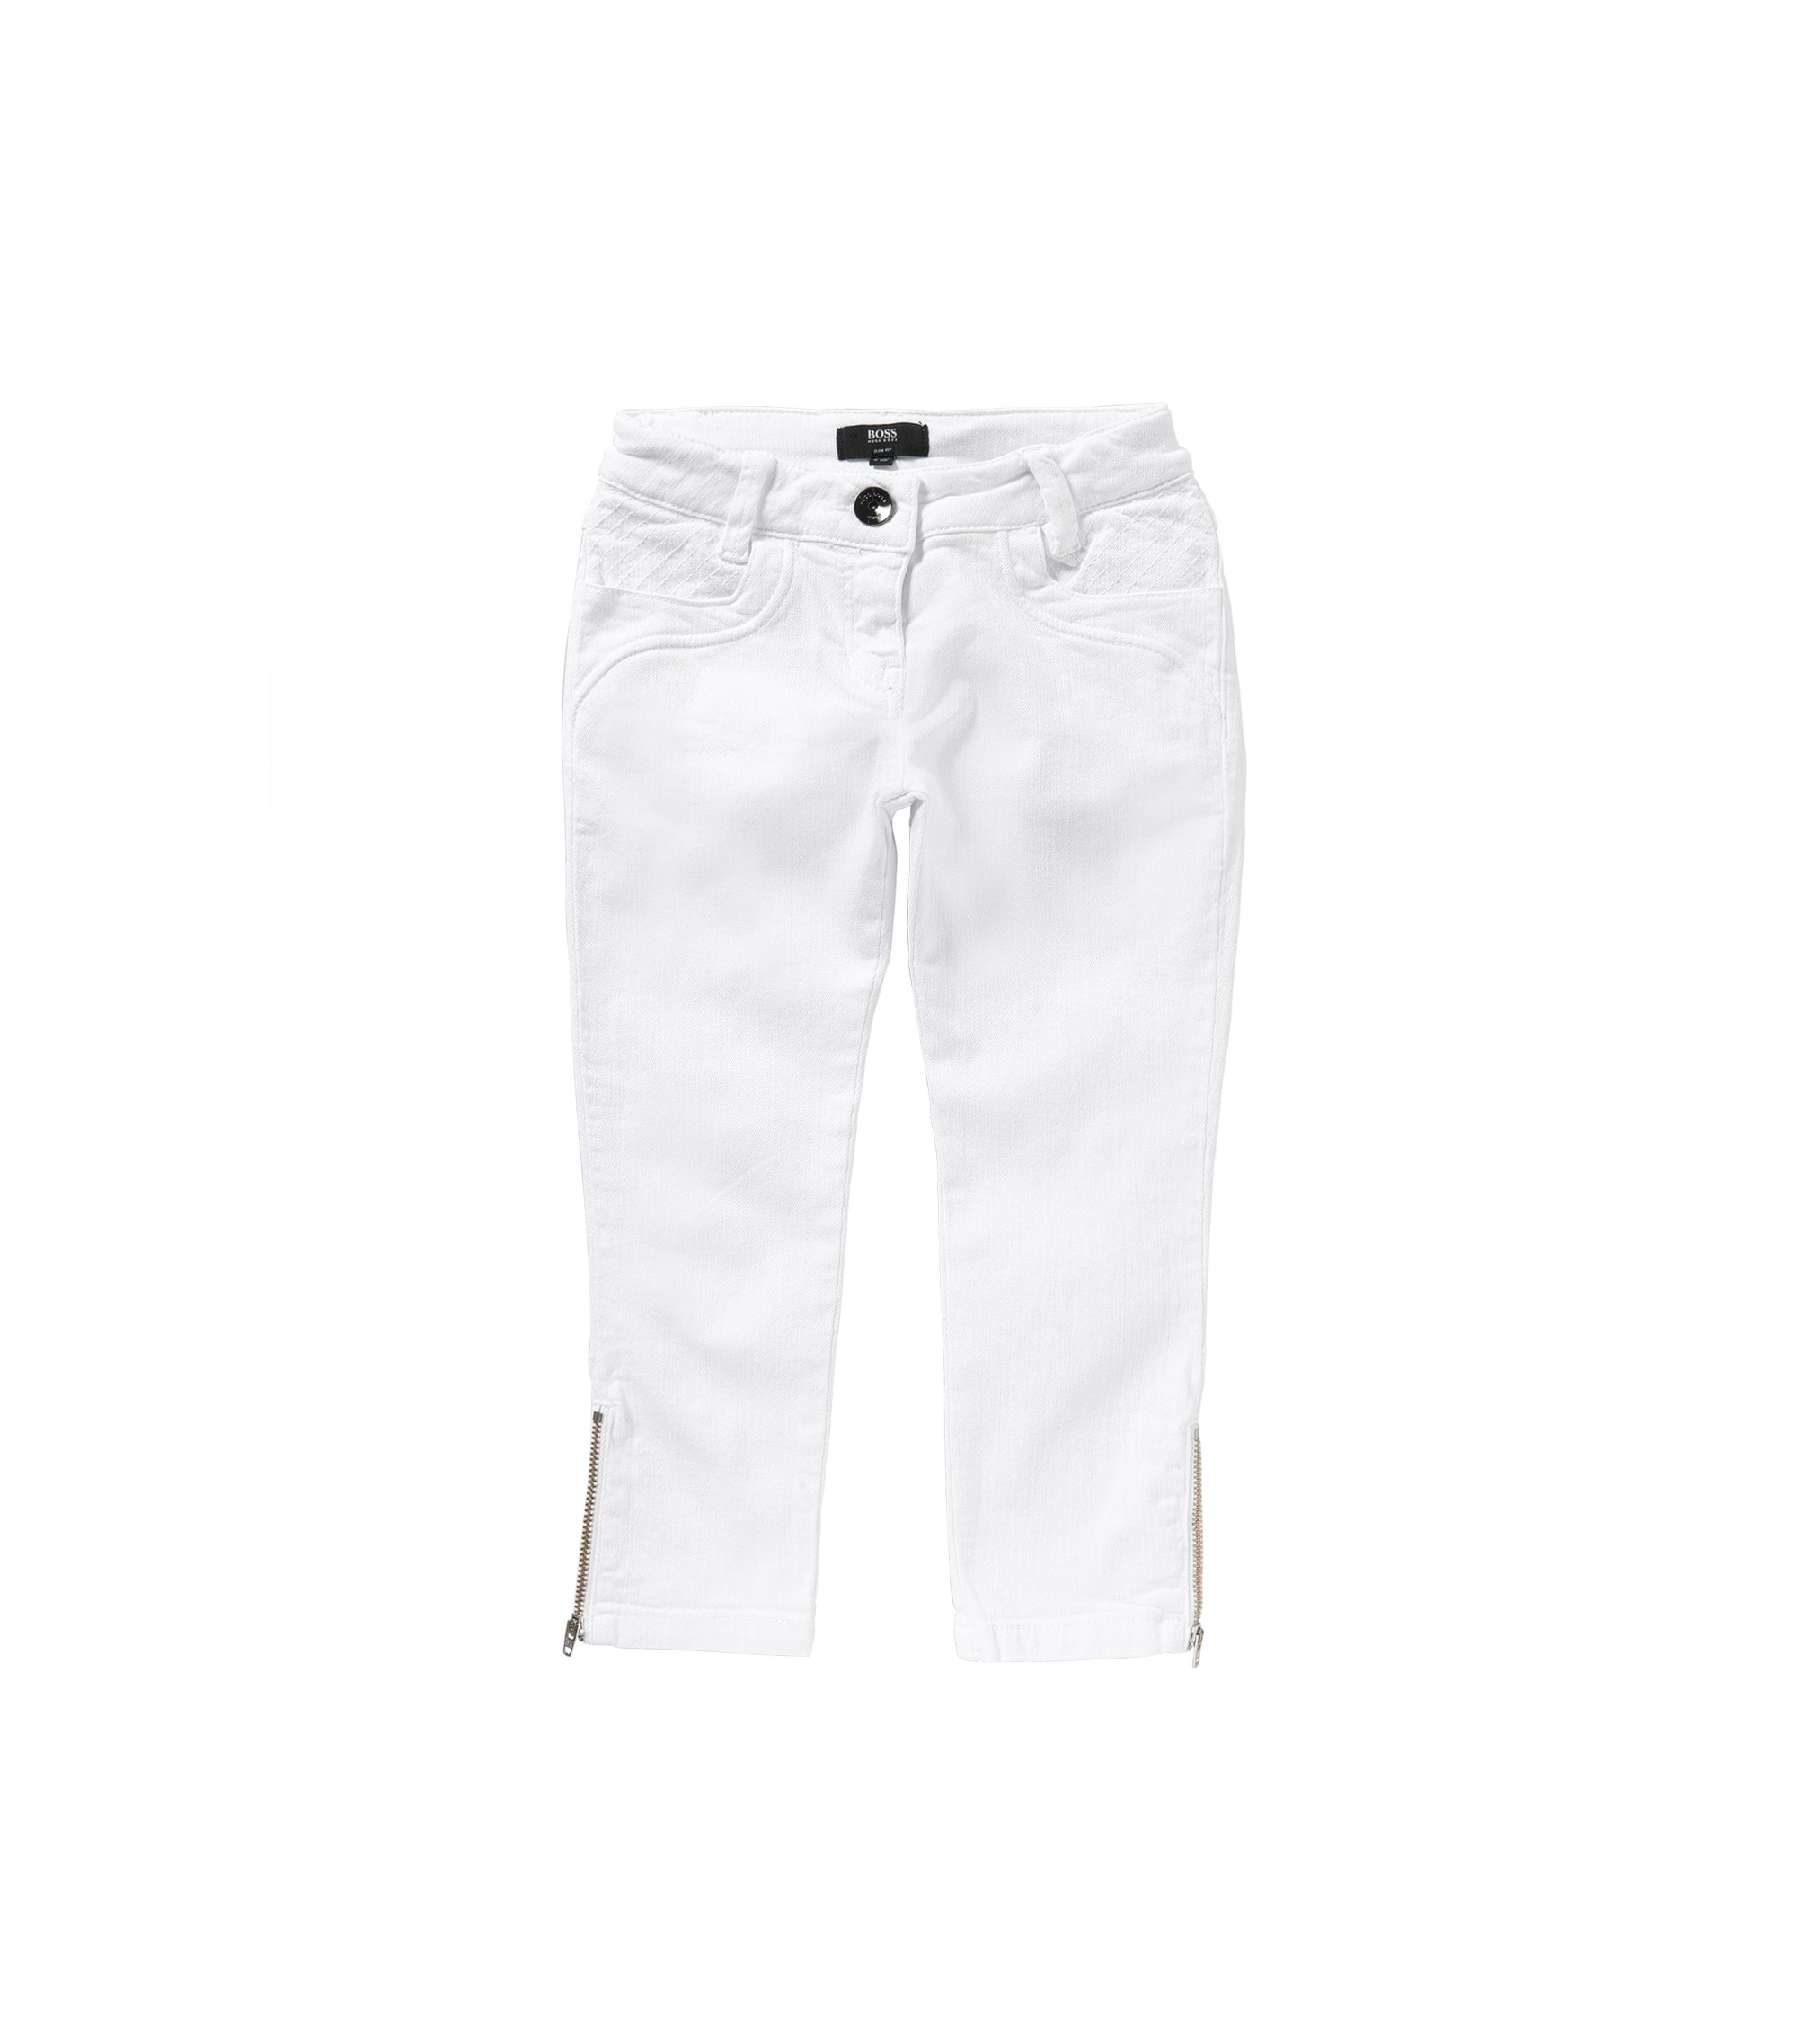 Slim-Fit Kids-Jeans aus Stretch-Baumwolle mit Zier-Zippern: 'J14176', Weiß